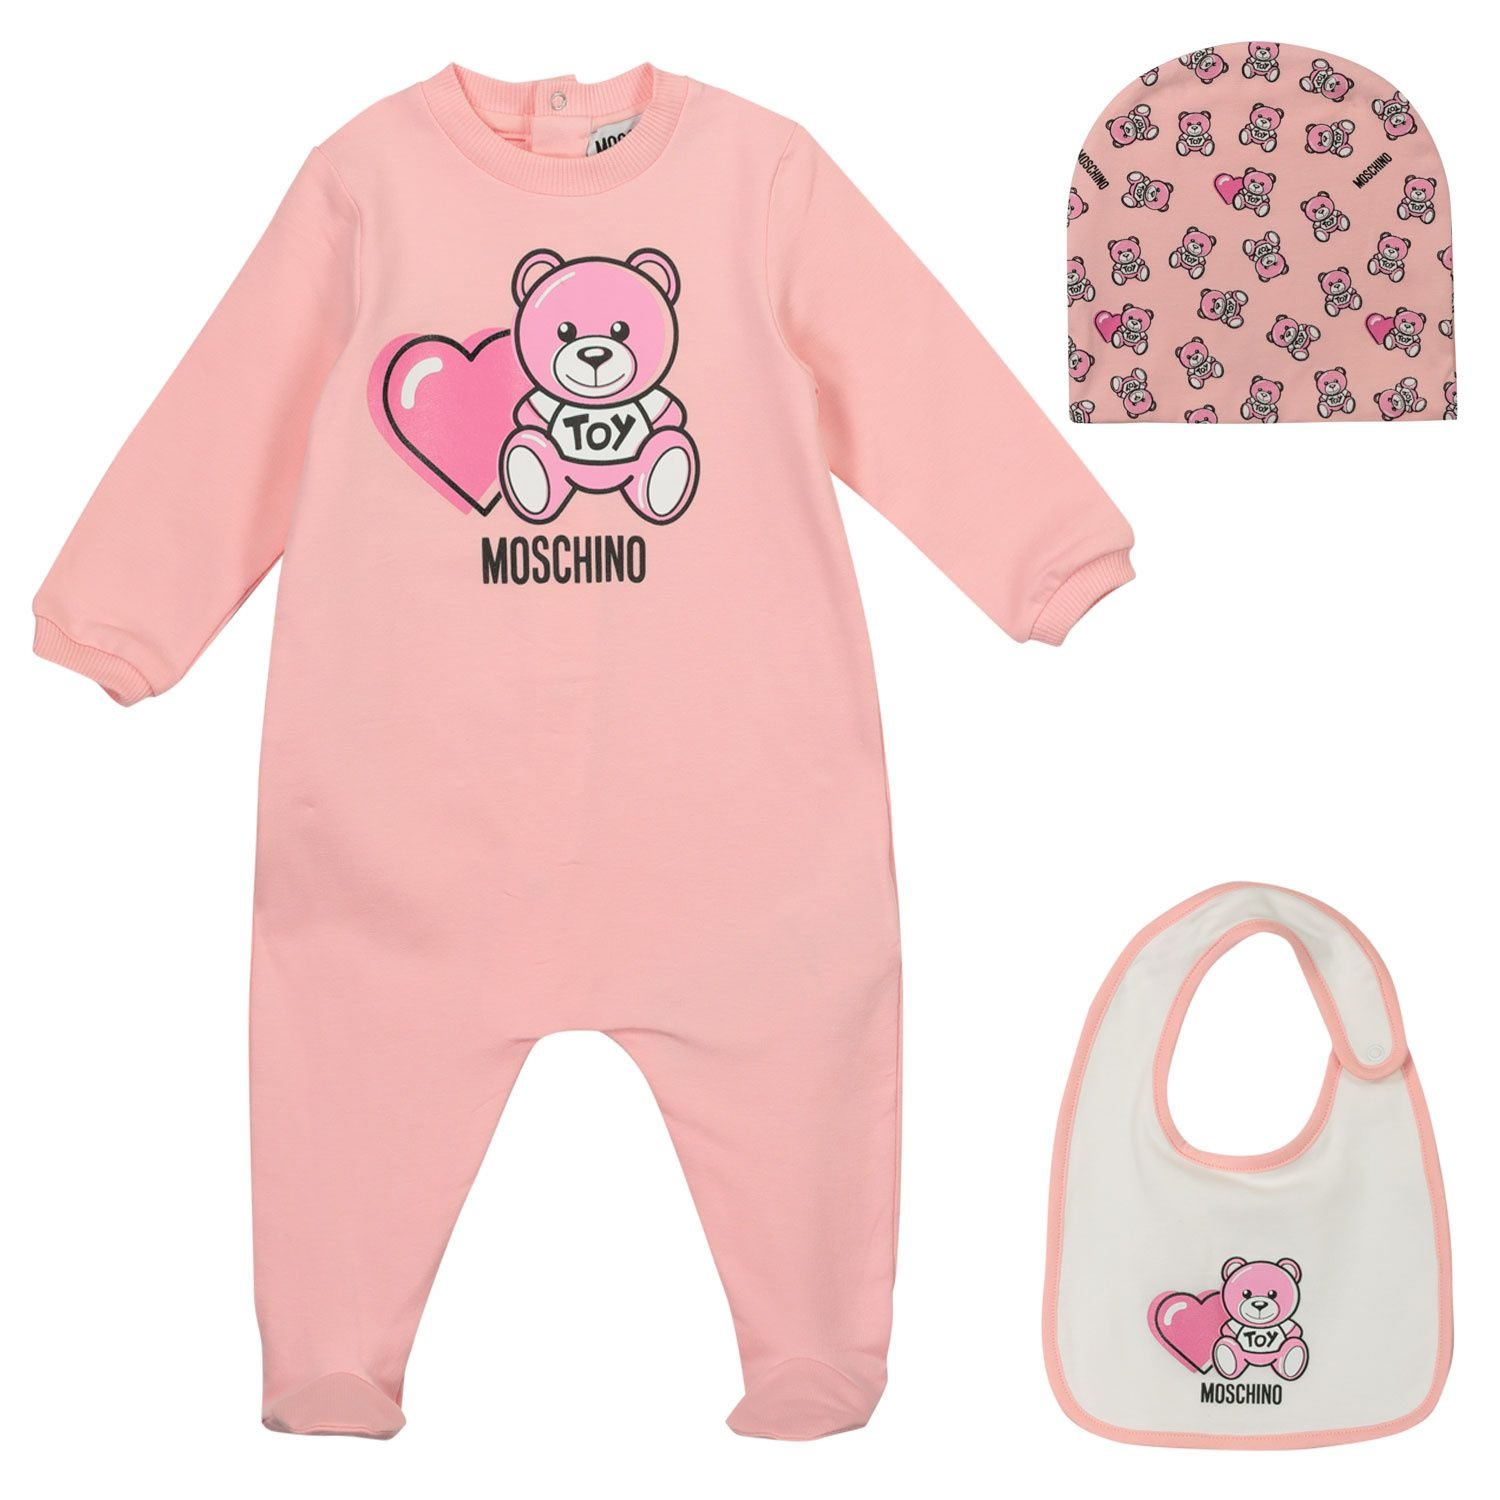 Picture of Moschino MUY03C baby playsuit light pink